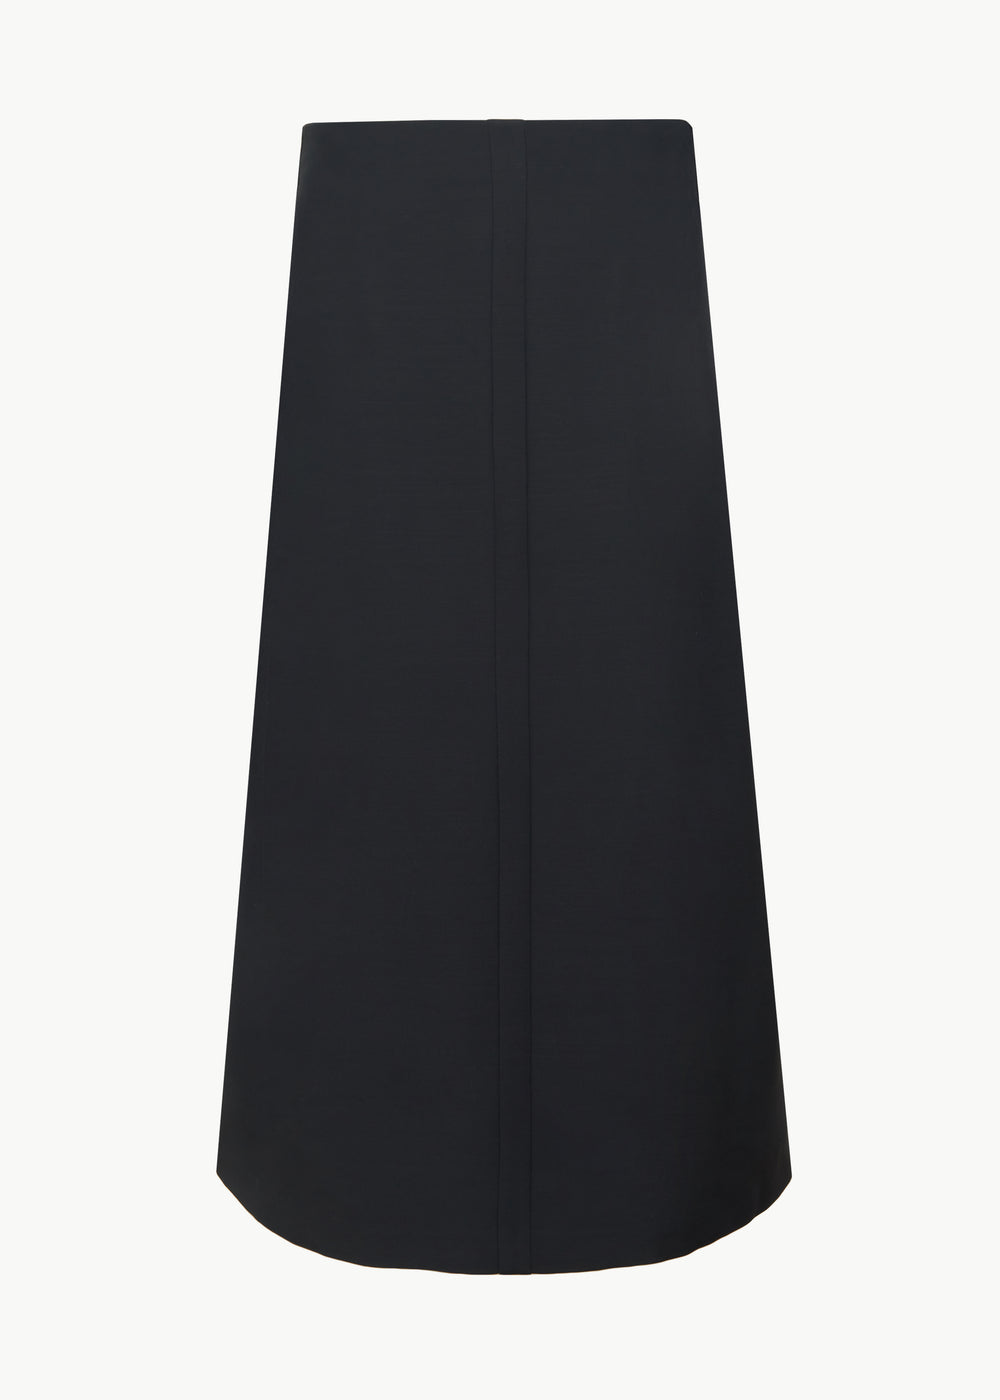 Center Seam Skirt in Viscose Wool - Black - CO